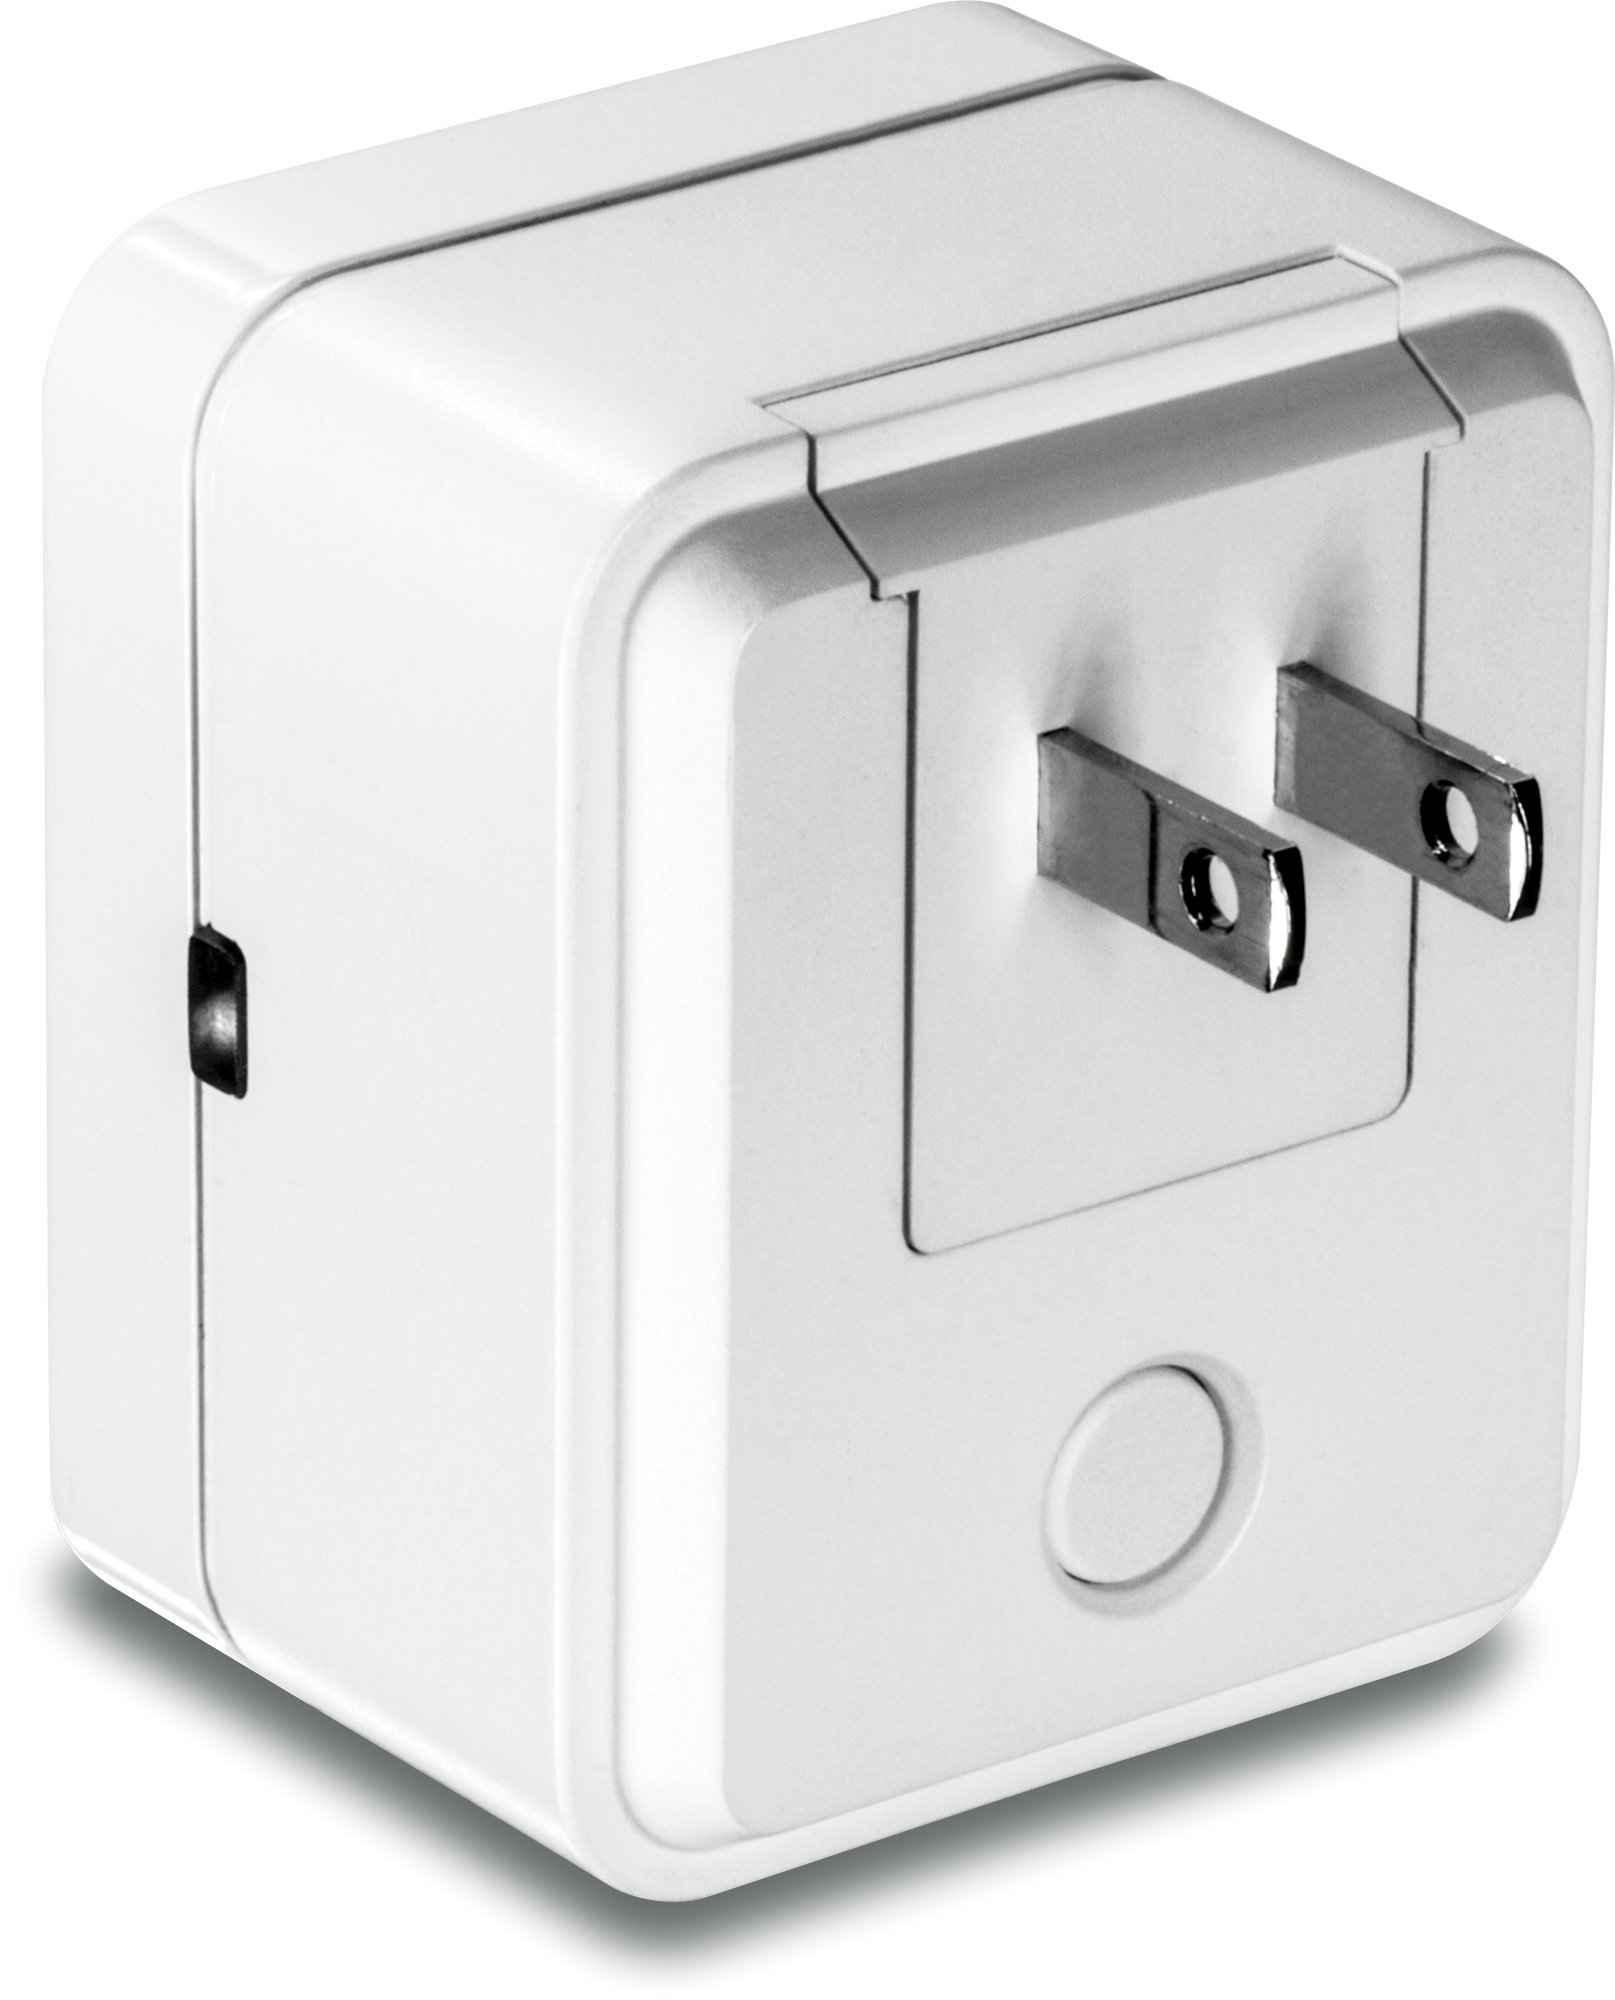 TRENDnet  TEW-737HRE N300 20 DBM, High Powered Universal Wireless Range Extender, Wi-Fi Repeater, Wall Plug, Plug and Play, Ethernet Port, One Touch connection (WPS), Smart Signal Indicator LED,IP V6, On/Off Power switch, TEW-737HRE by TRENDnet (Image #3)